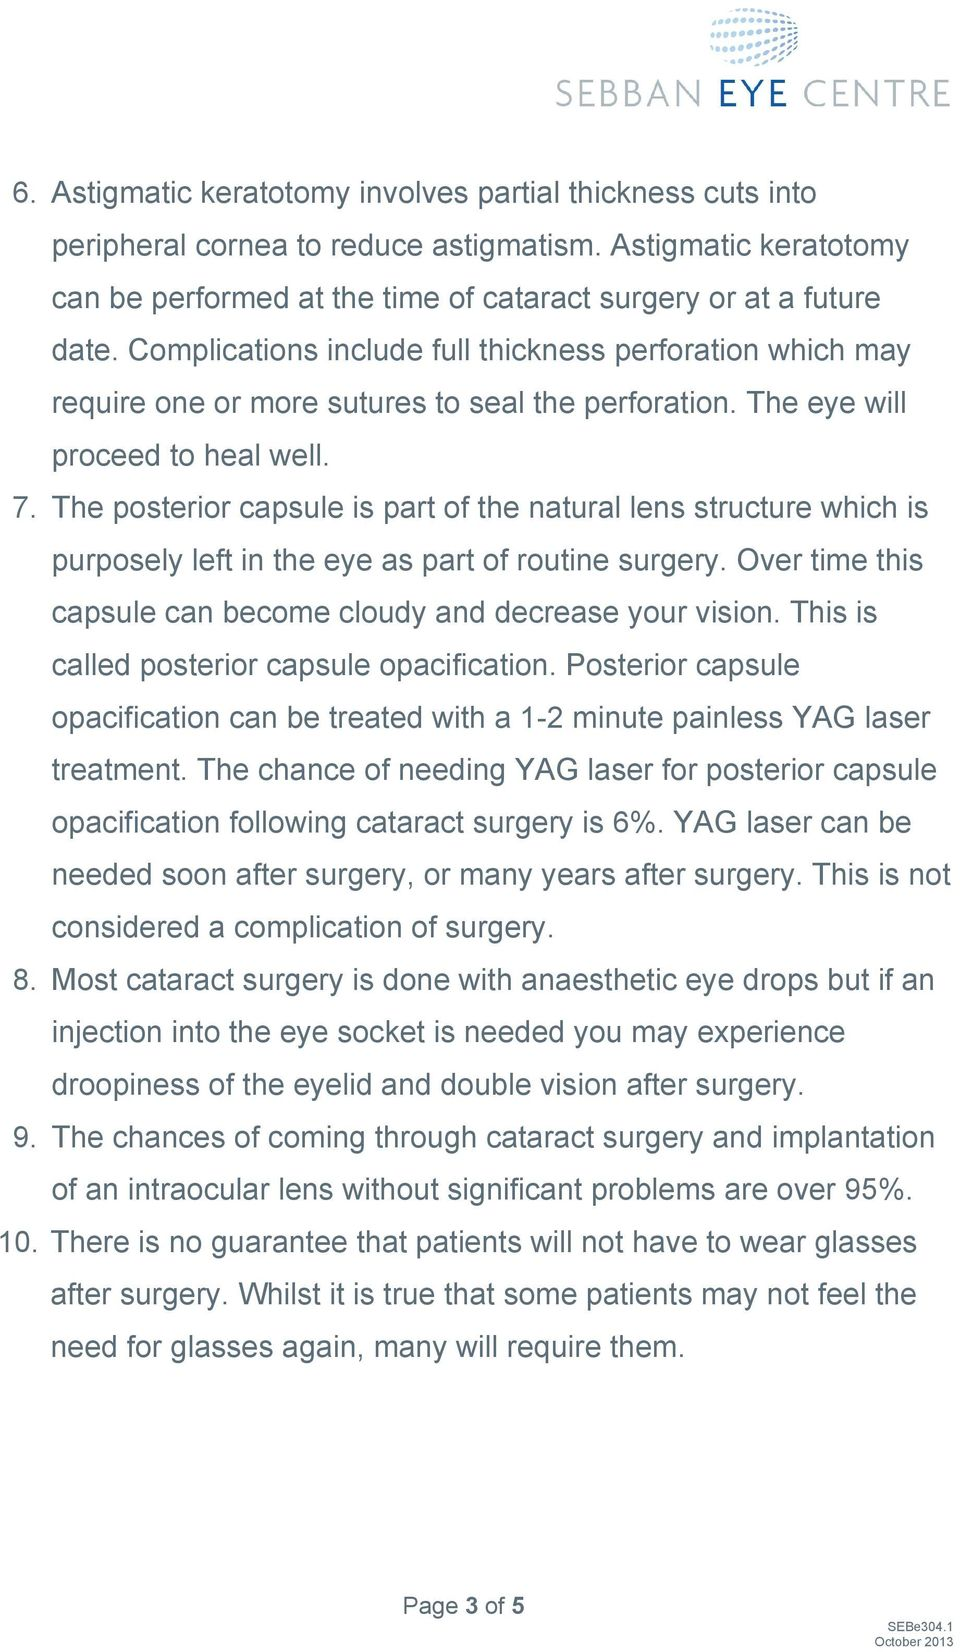 The posterior capsule is part of the natural lens structure which is purposely left in the eye as part of routine surgery. Over time this capsule can become cloudy and decrease your vision.